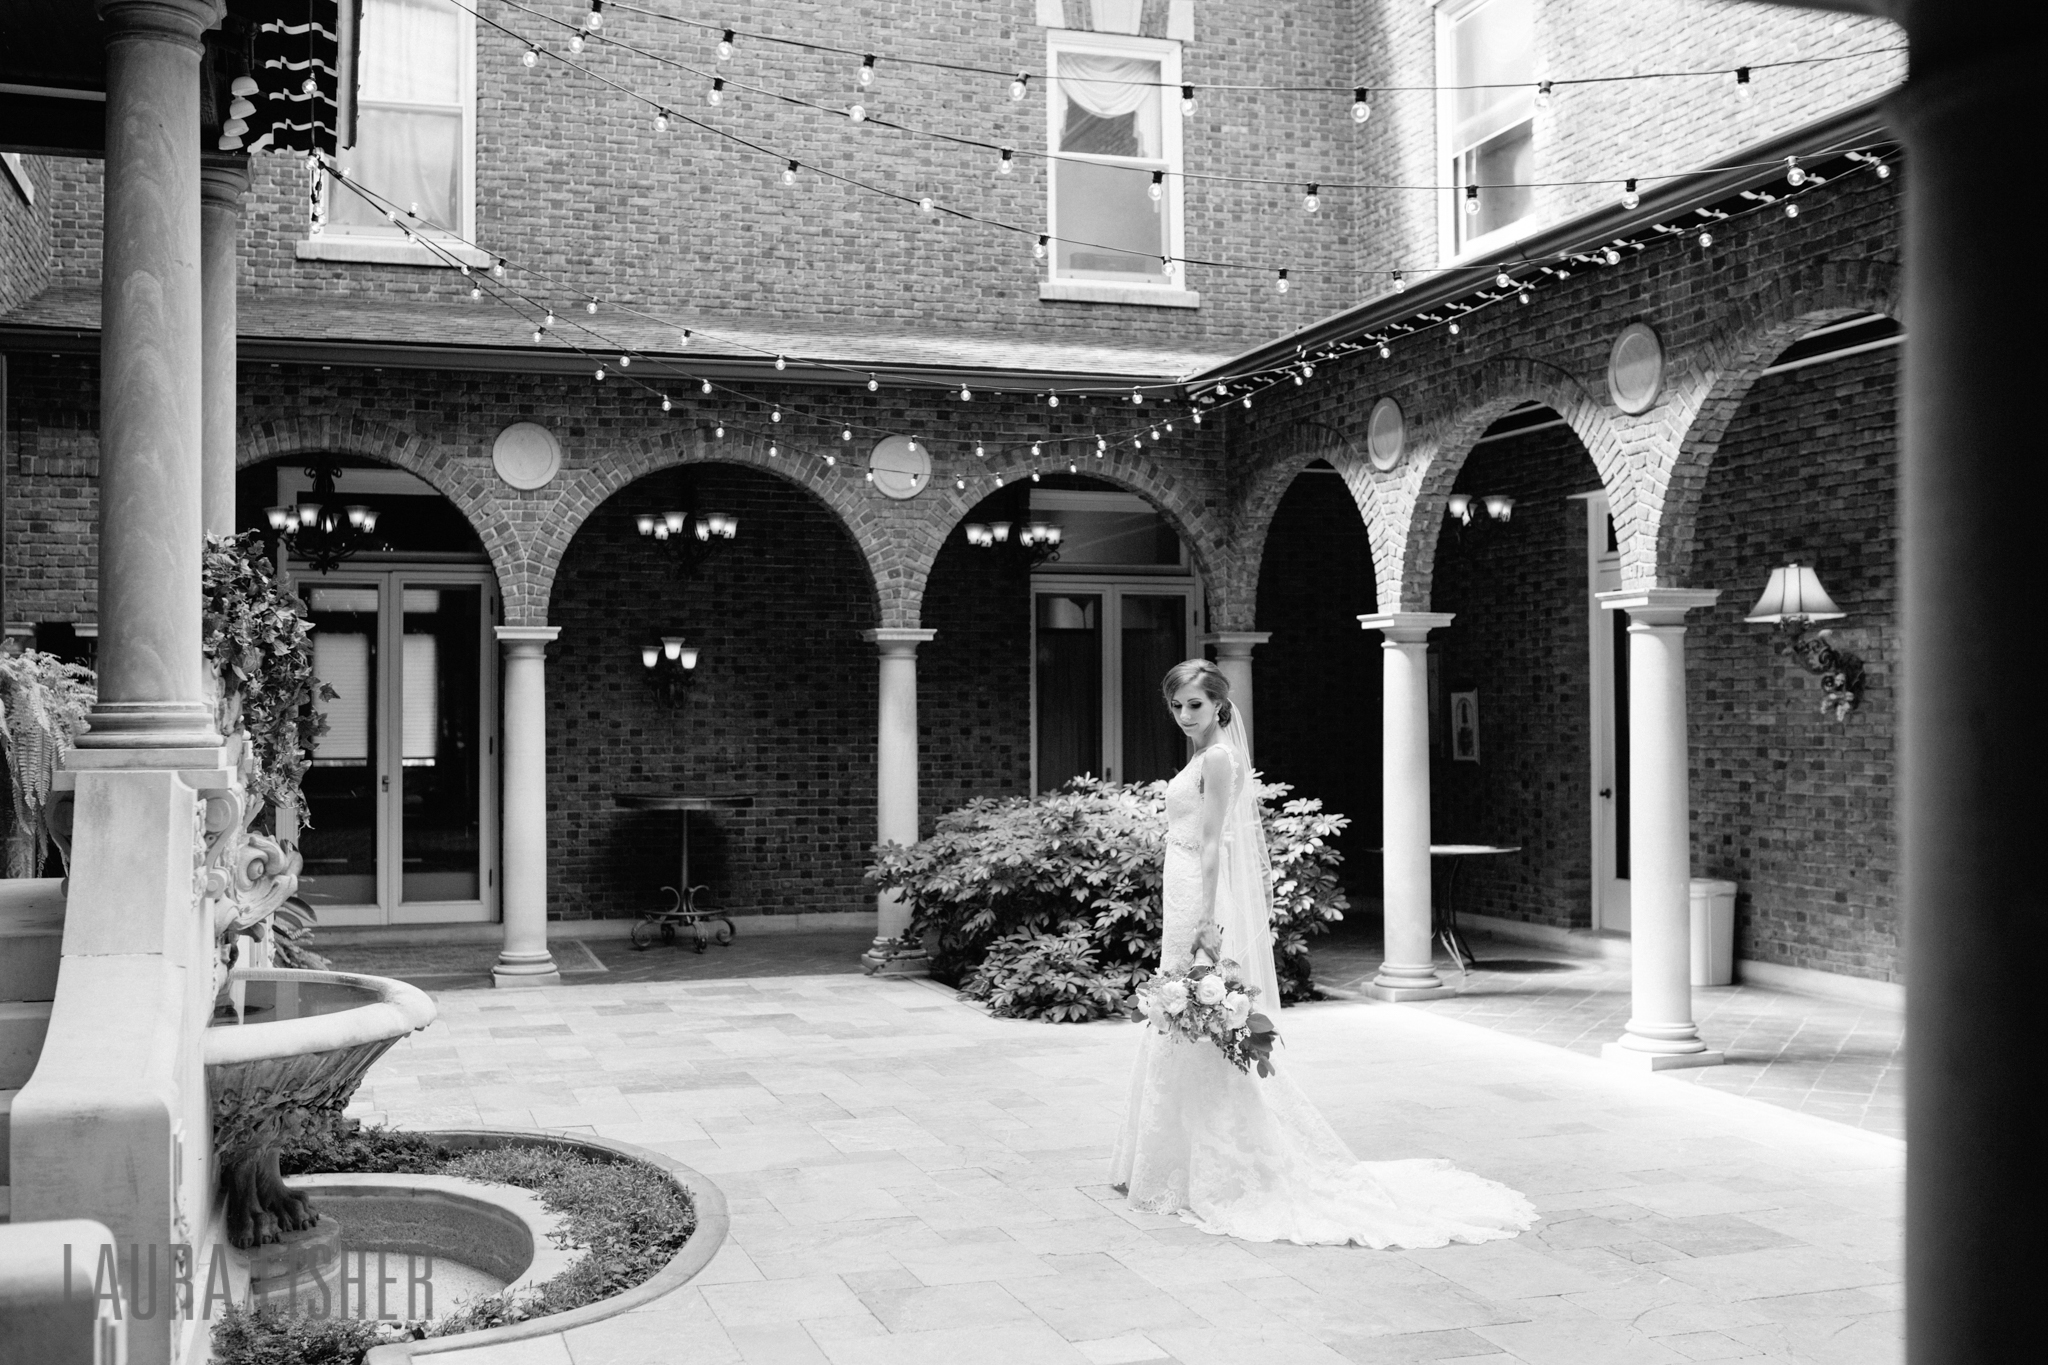 laurel-court-mansion-wedding-cincinnati-0034-2.jpg